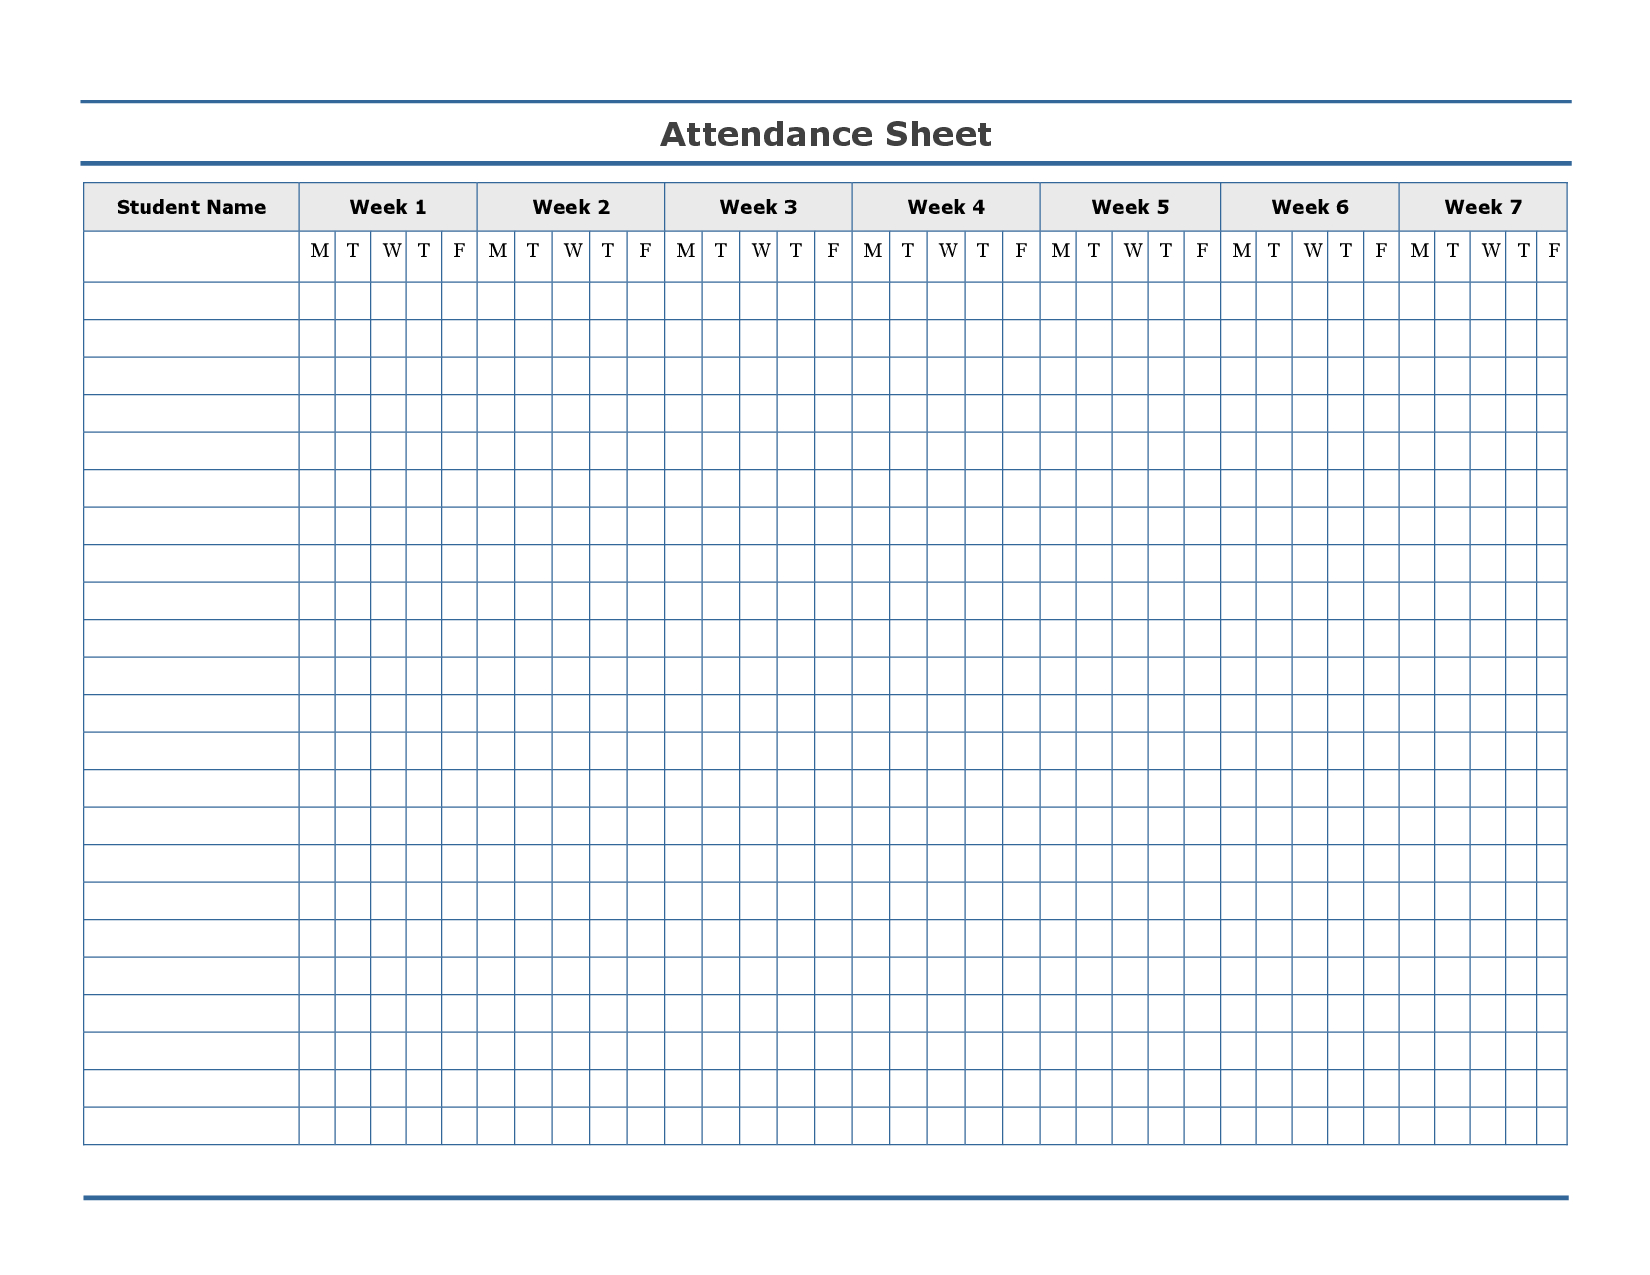 Free Printable Attendance Sheets For Teachers - Tutlin.psstech.co - Free Printable Attendance Sheets For Homeschool